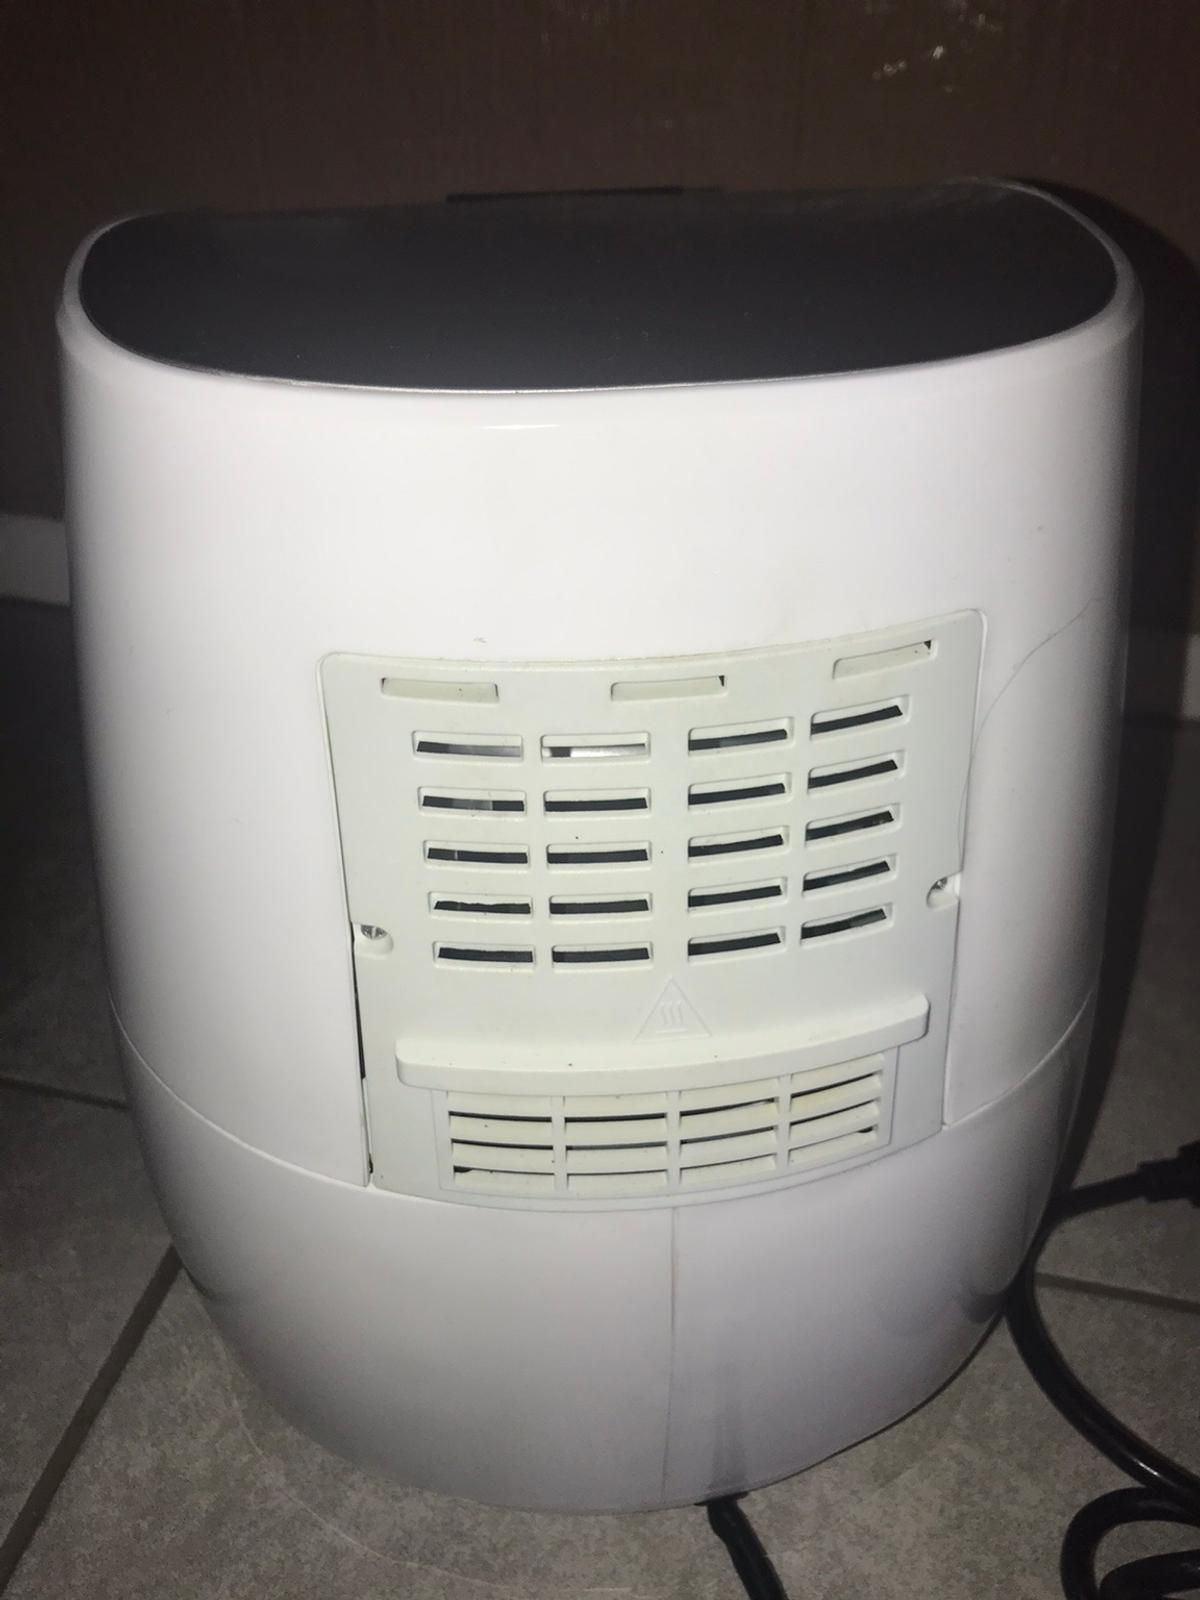 Used air fryer Working conditions